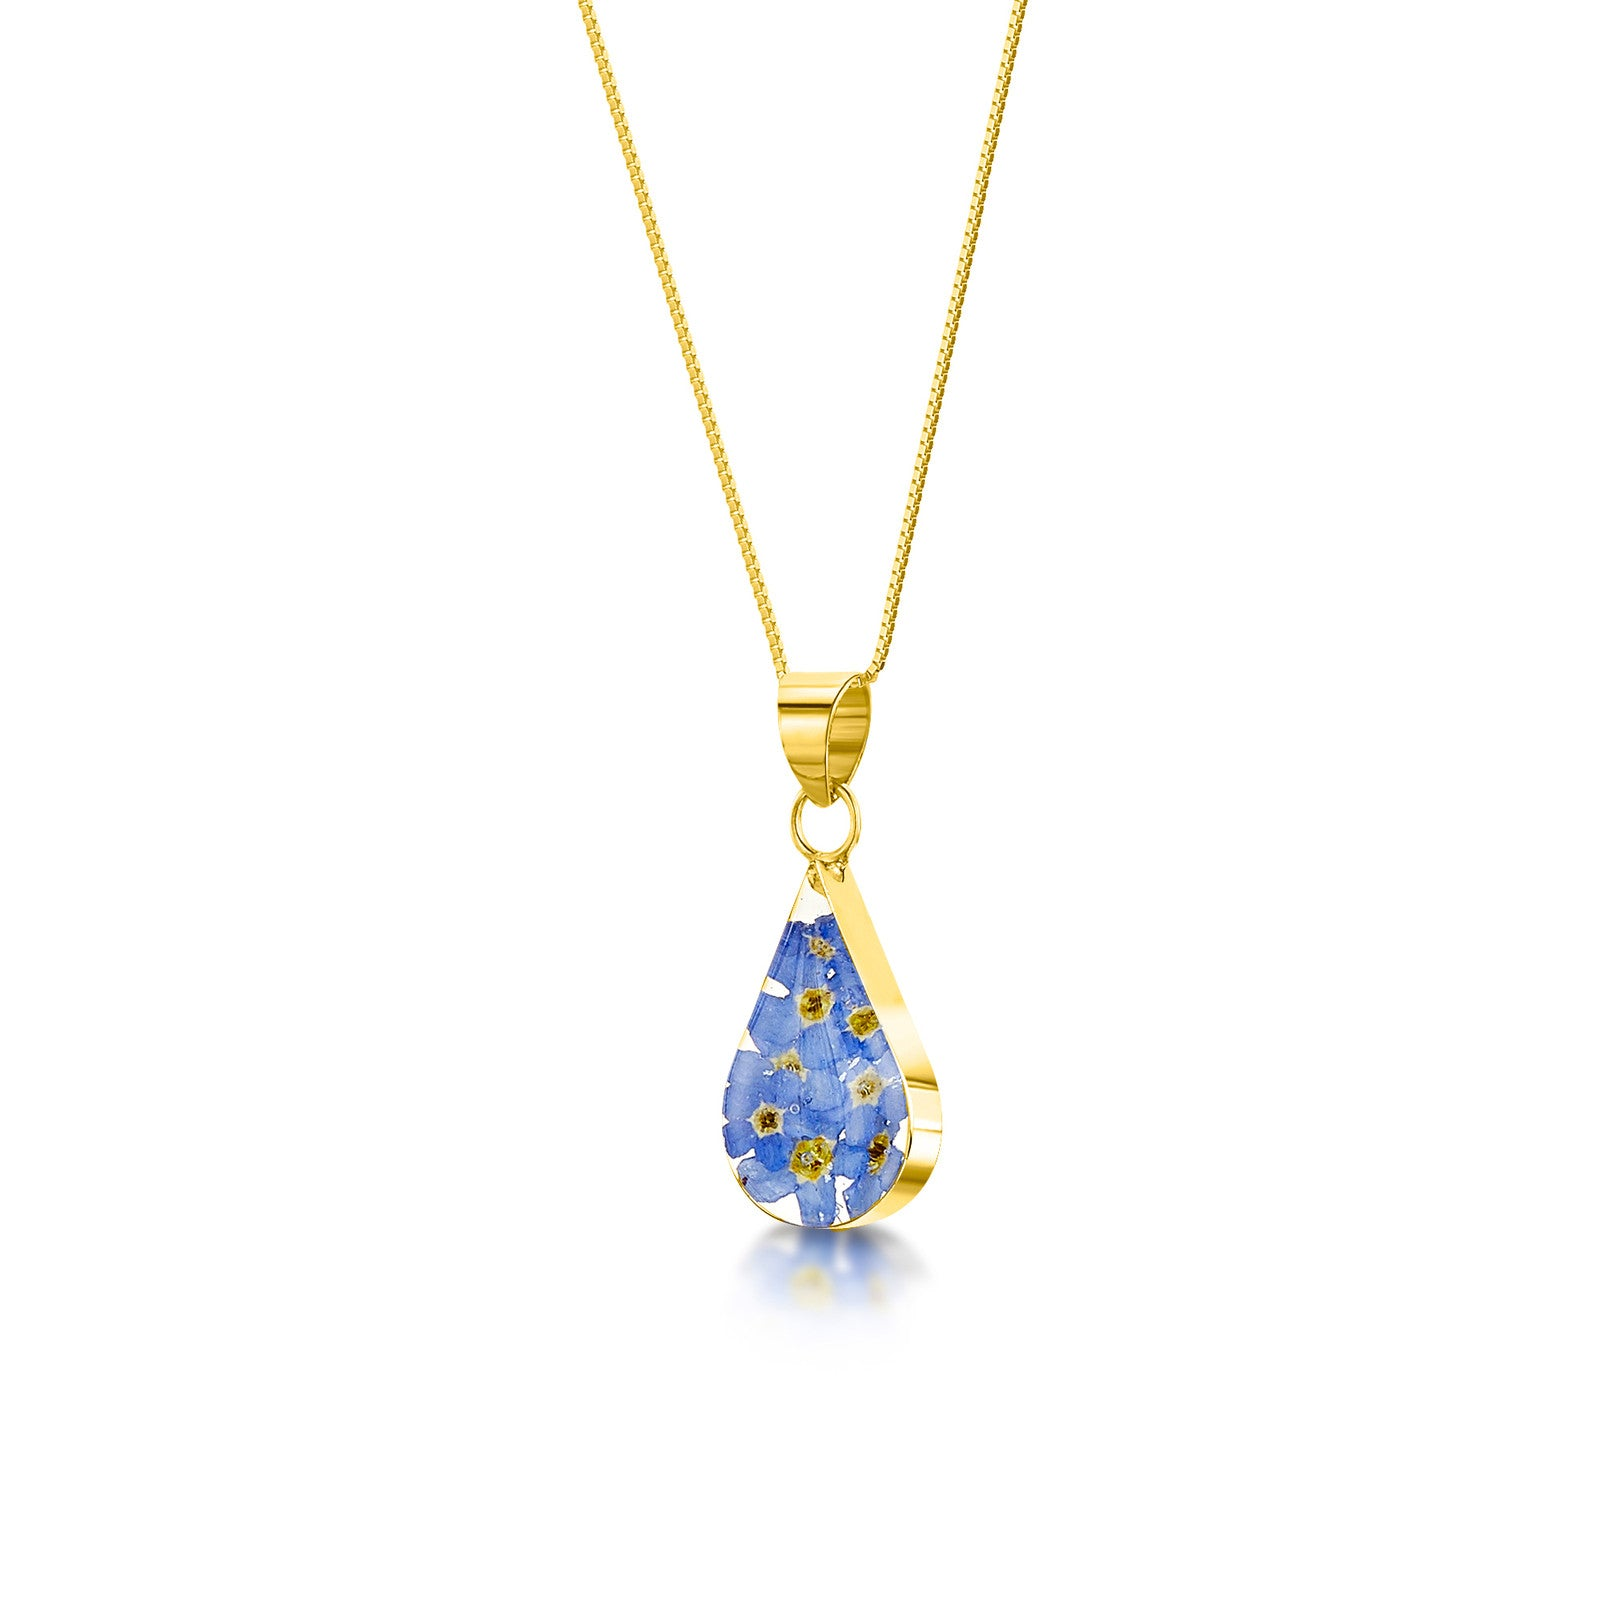 23K Gold plated sterling silver necklace - Forget-me-not - Teardrop